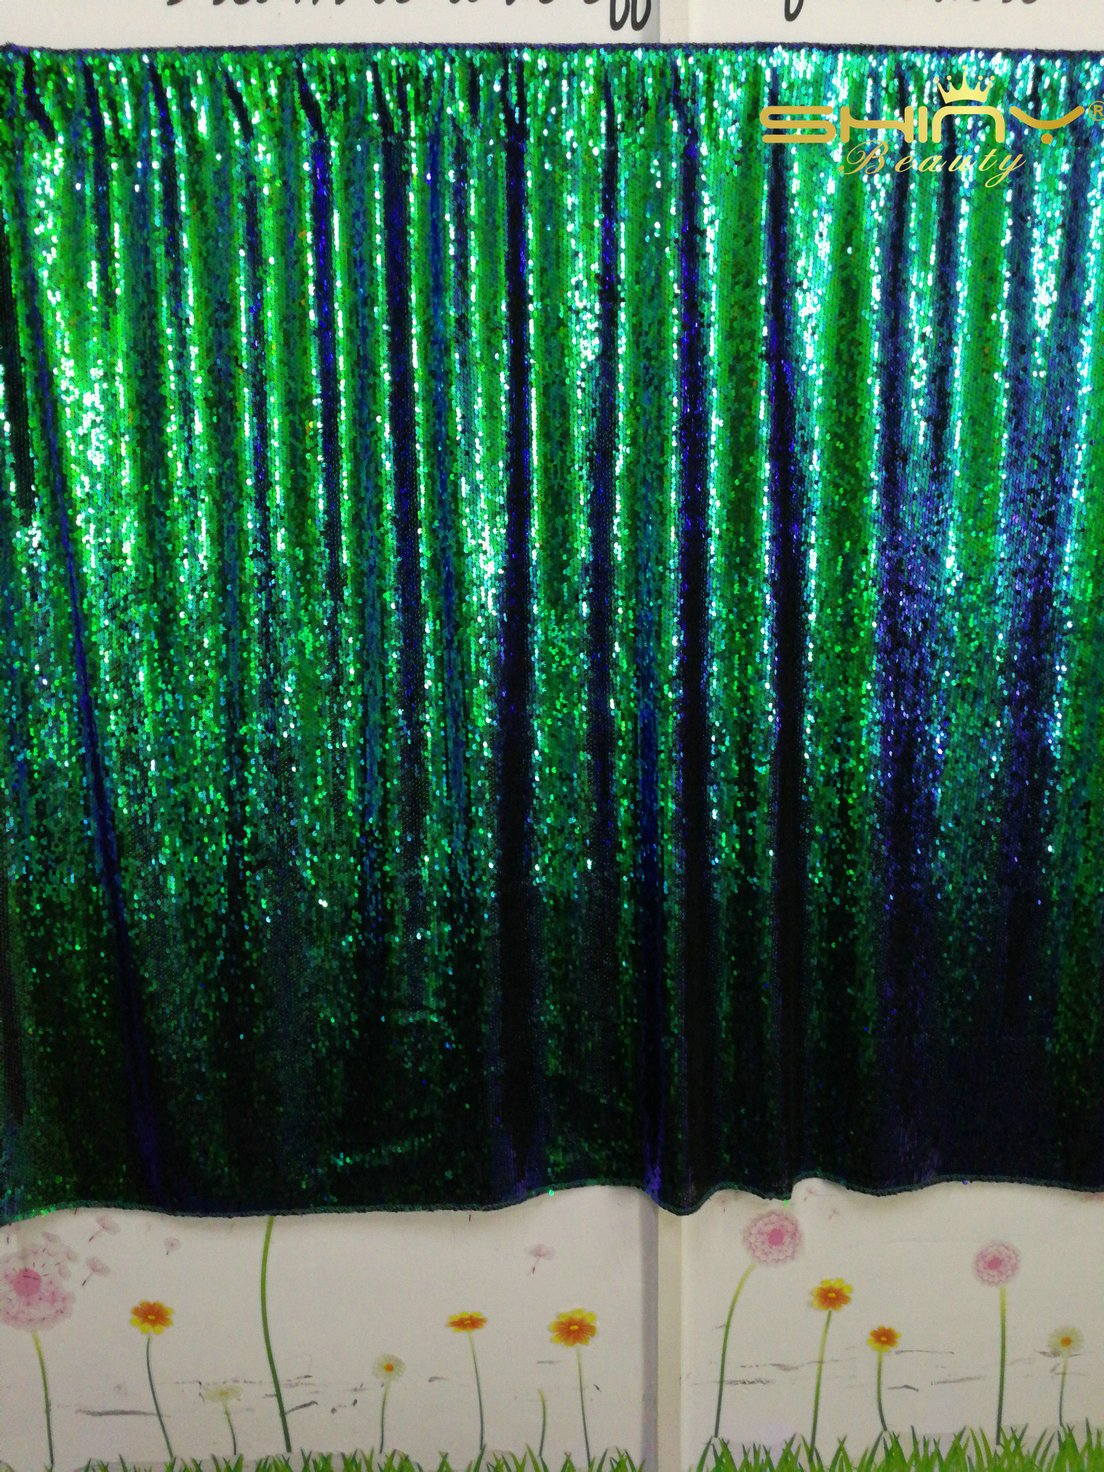 ShinyBeauty 10FTx10FT-Mermaid-Green&Black-Sequin Curtain Backdrop,Reversible Sequin Fabirc Photography Backdrops For Photo/Wedding/Party/Event/Prom/Birthday by ShinyBeauty